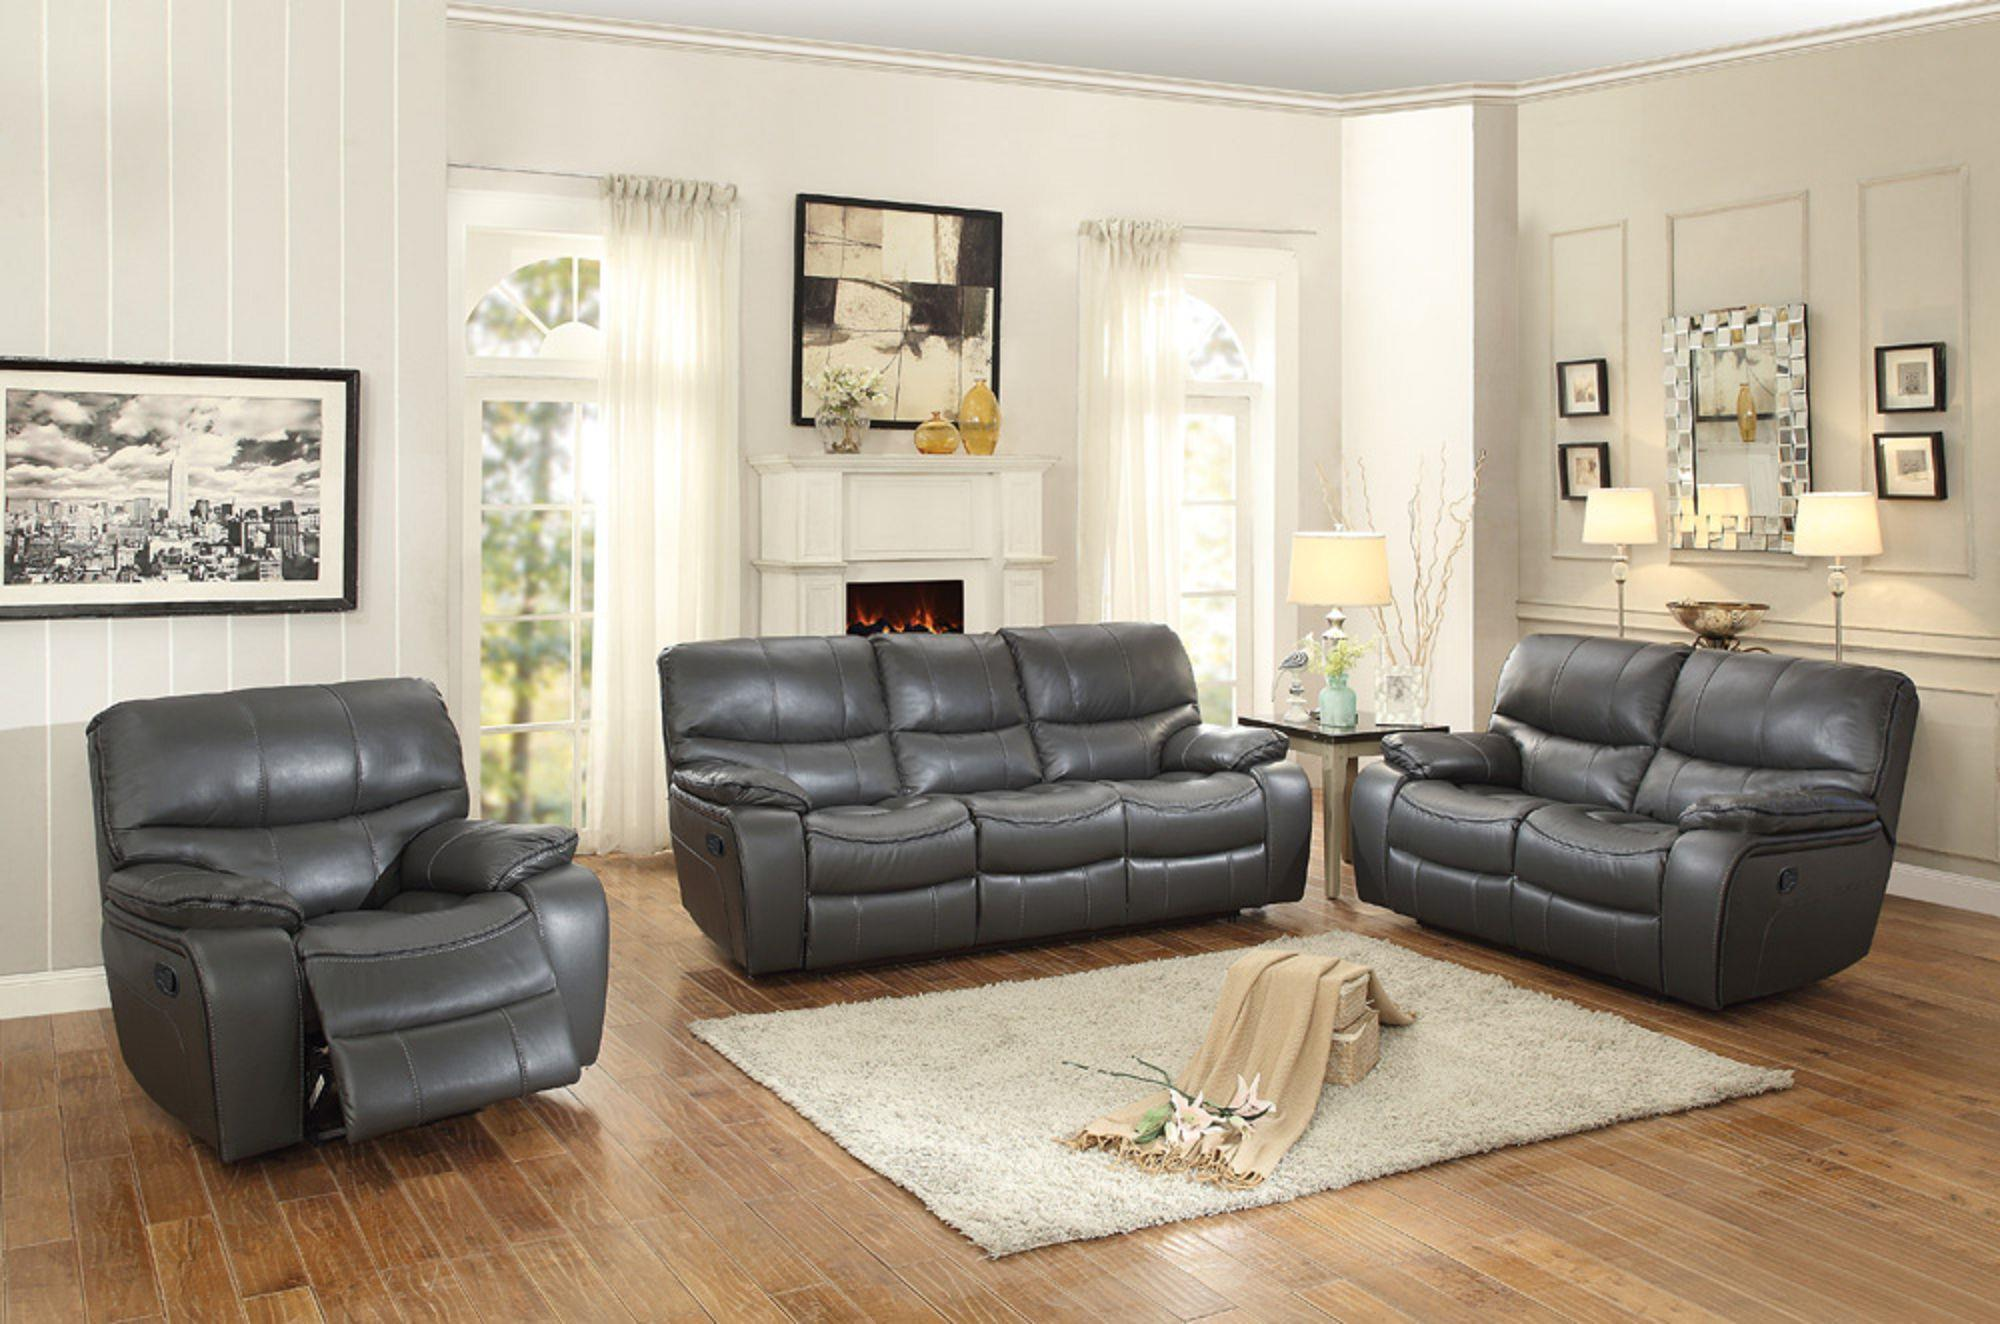 Homelegance Pecos Casual Reclining Loveseat Boulevard Home